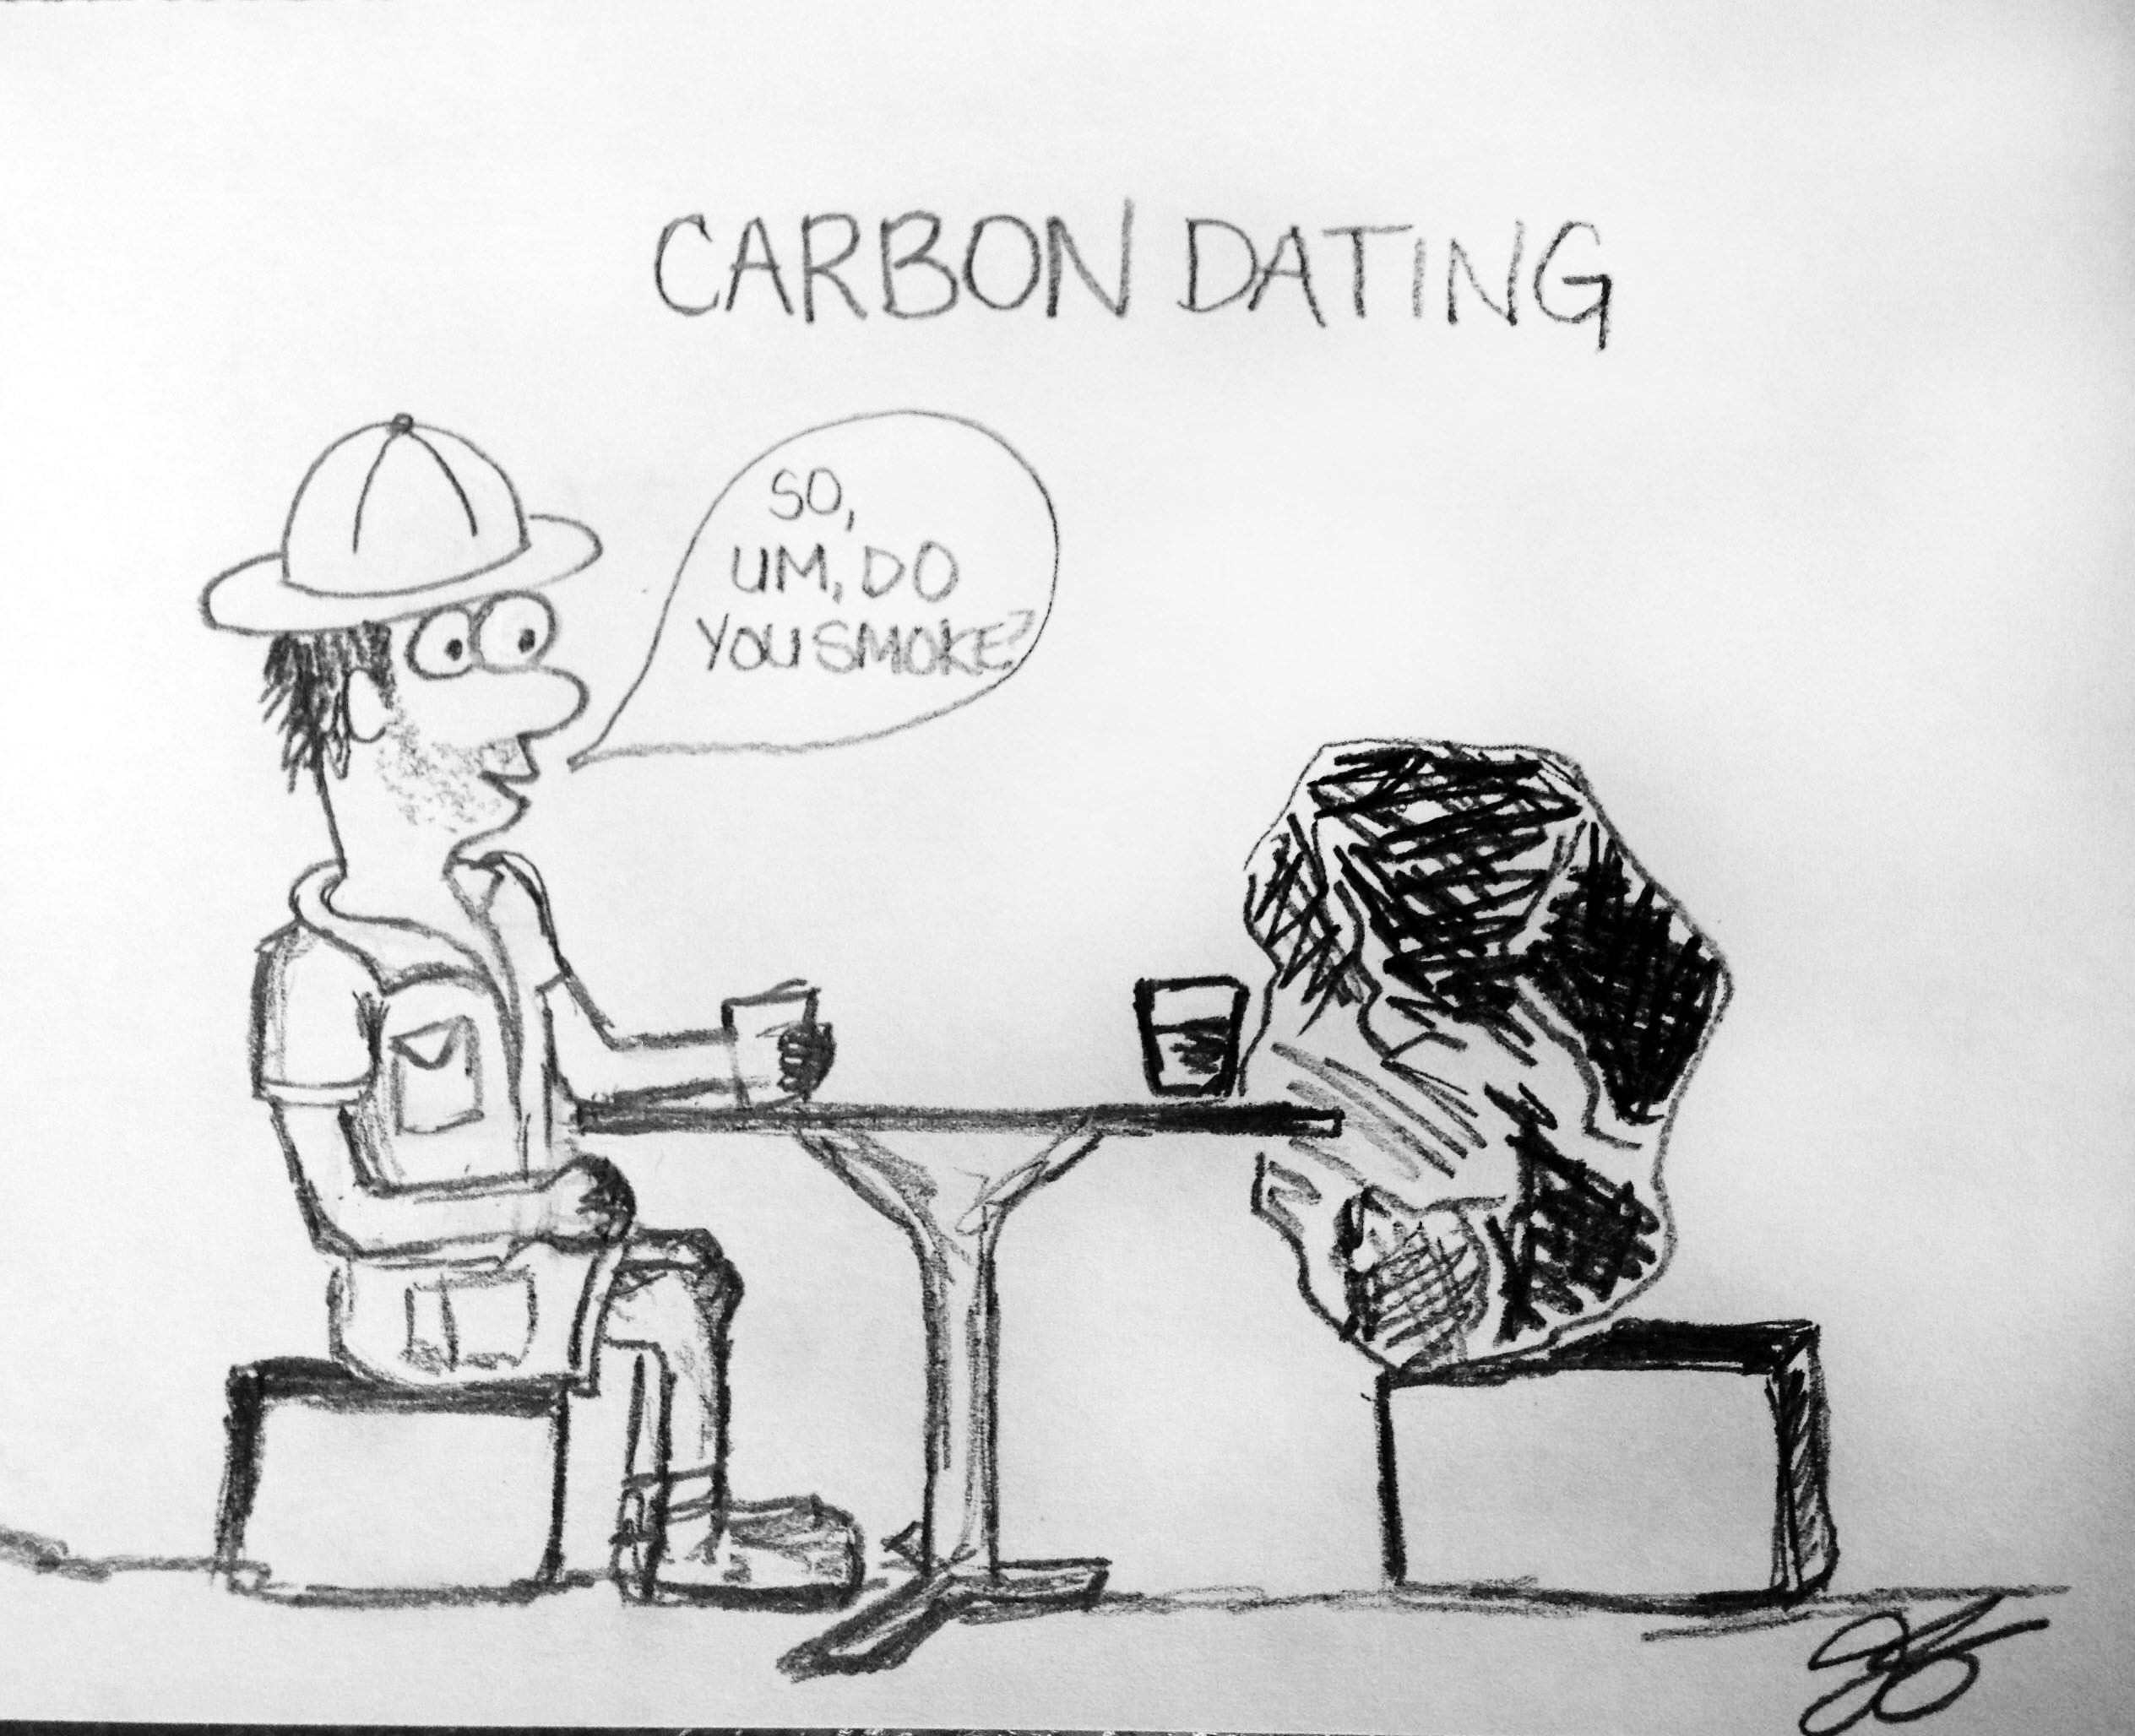 When was carbon dating invented